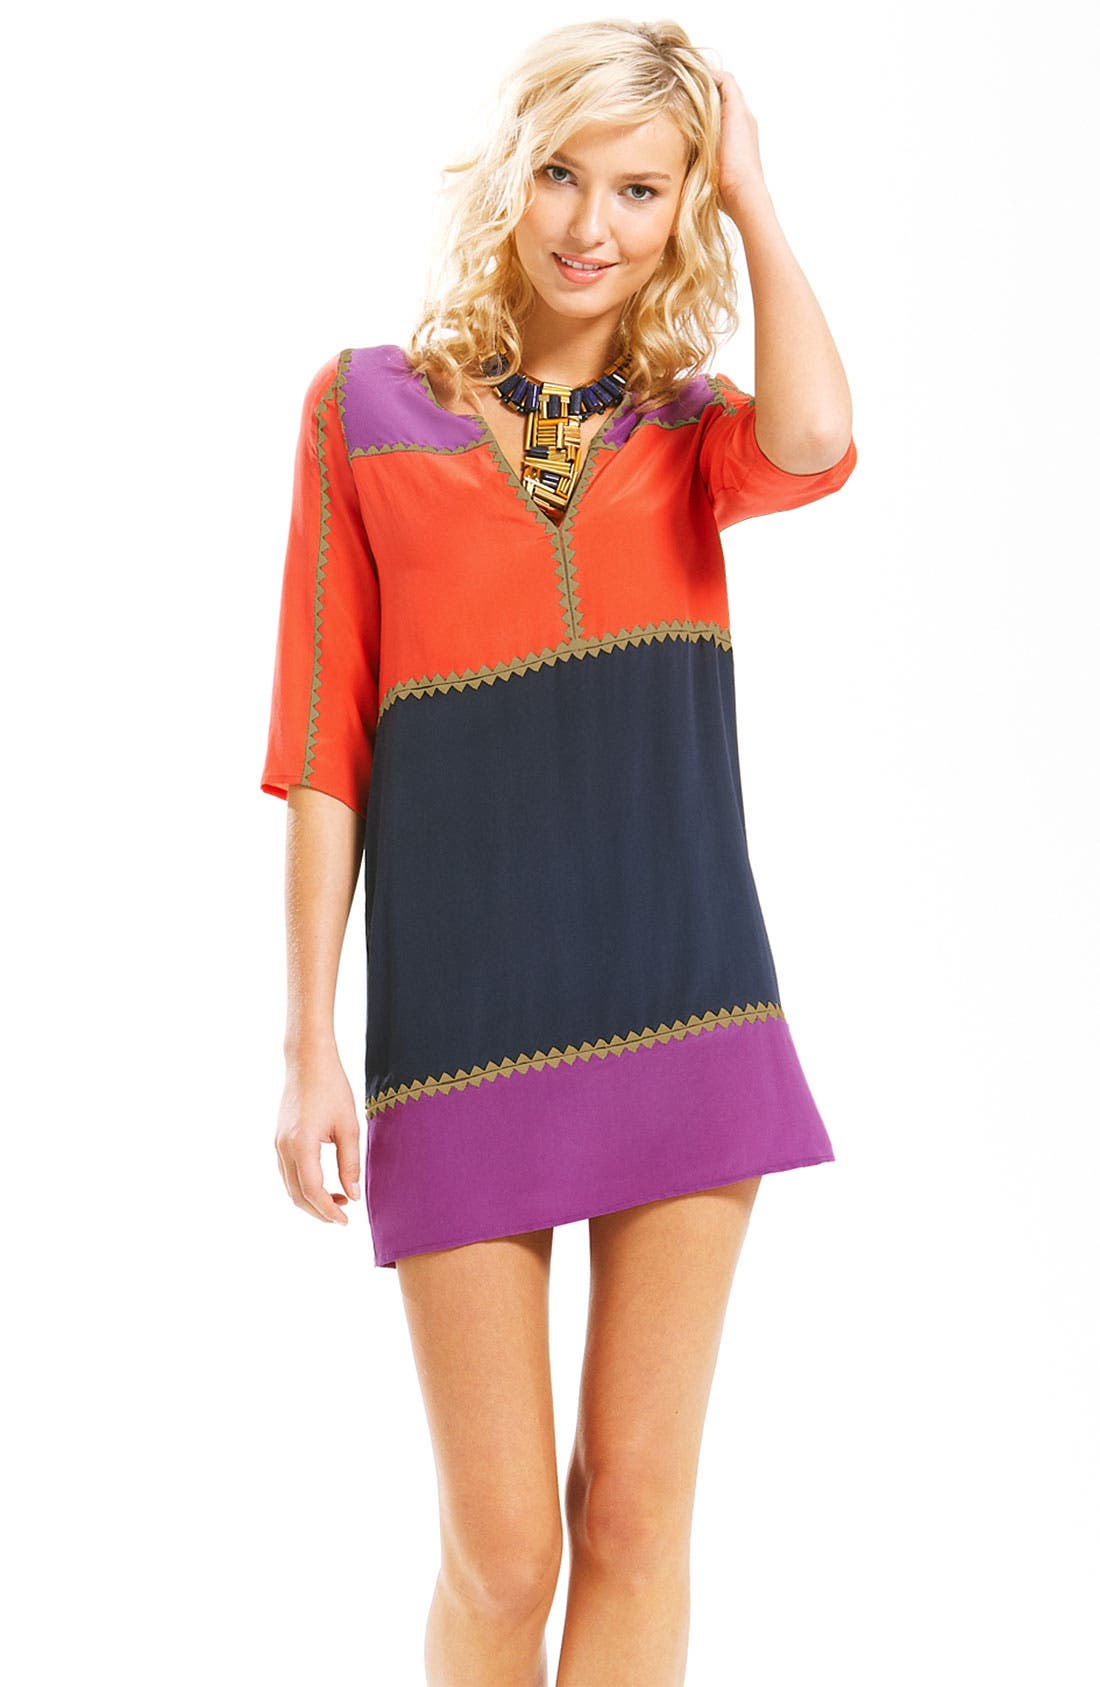 Alternate Image 1 Selected - BCBGMAXAZRIA 'Aidas' Colorblock Minidress